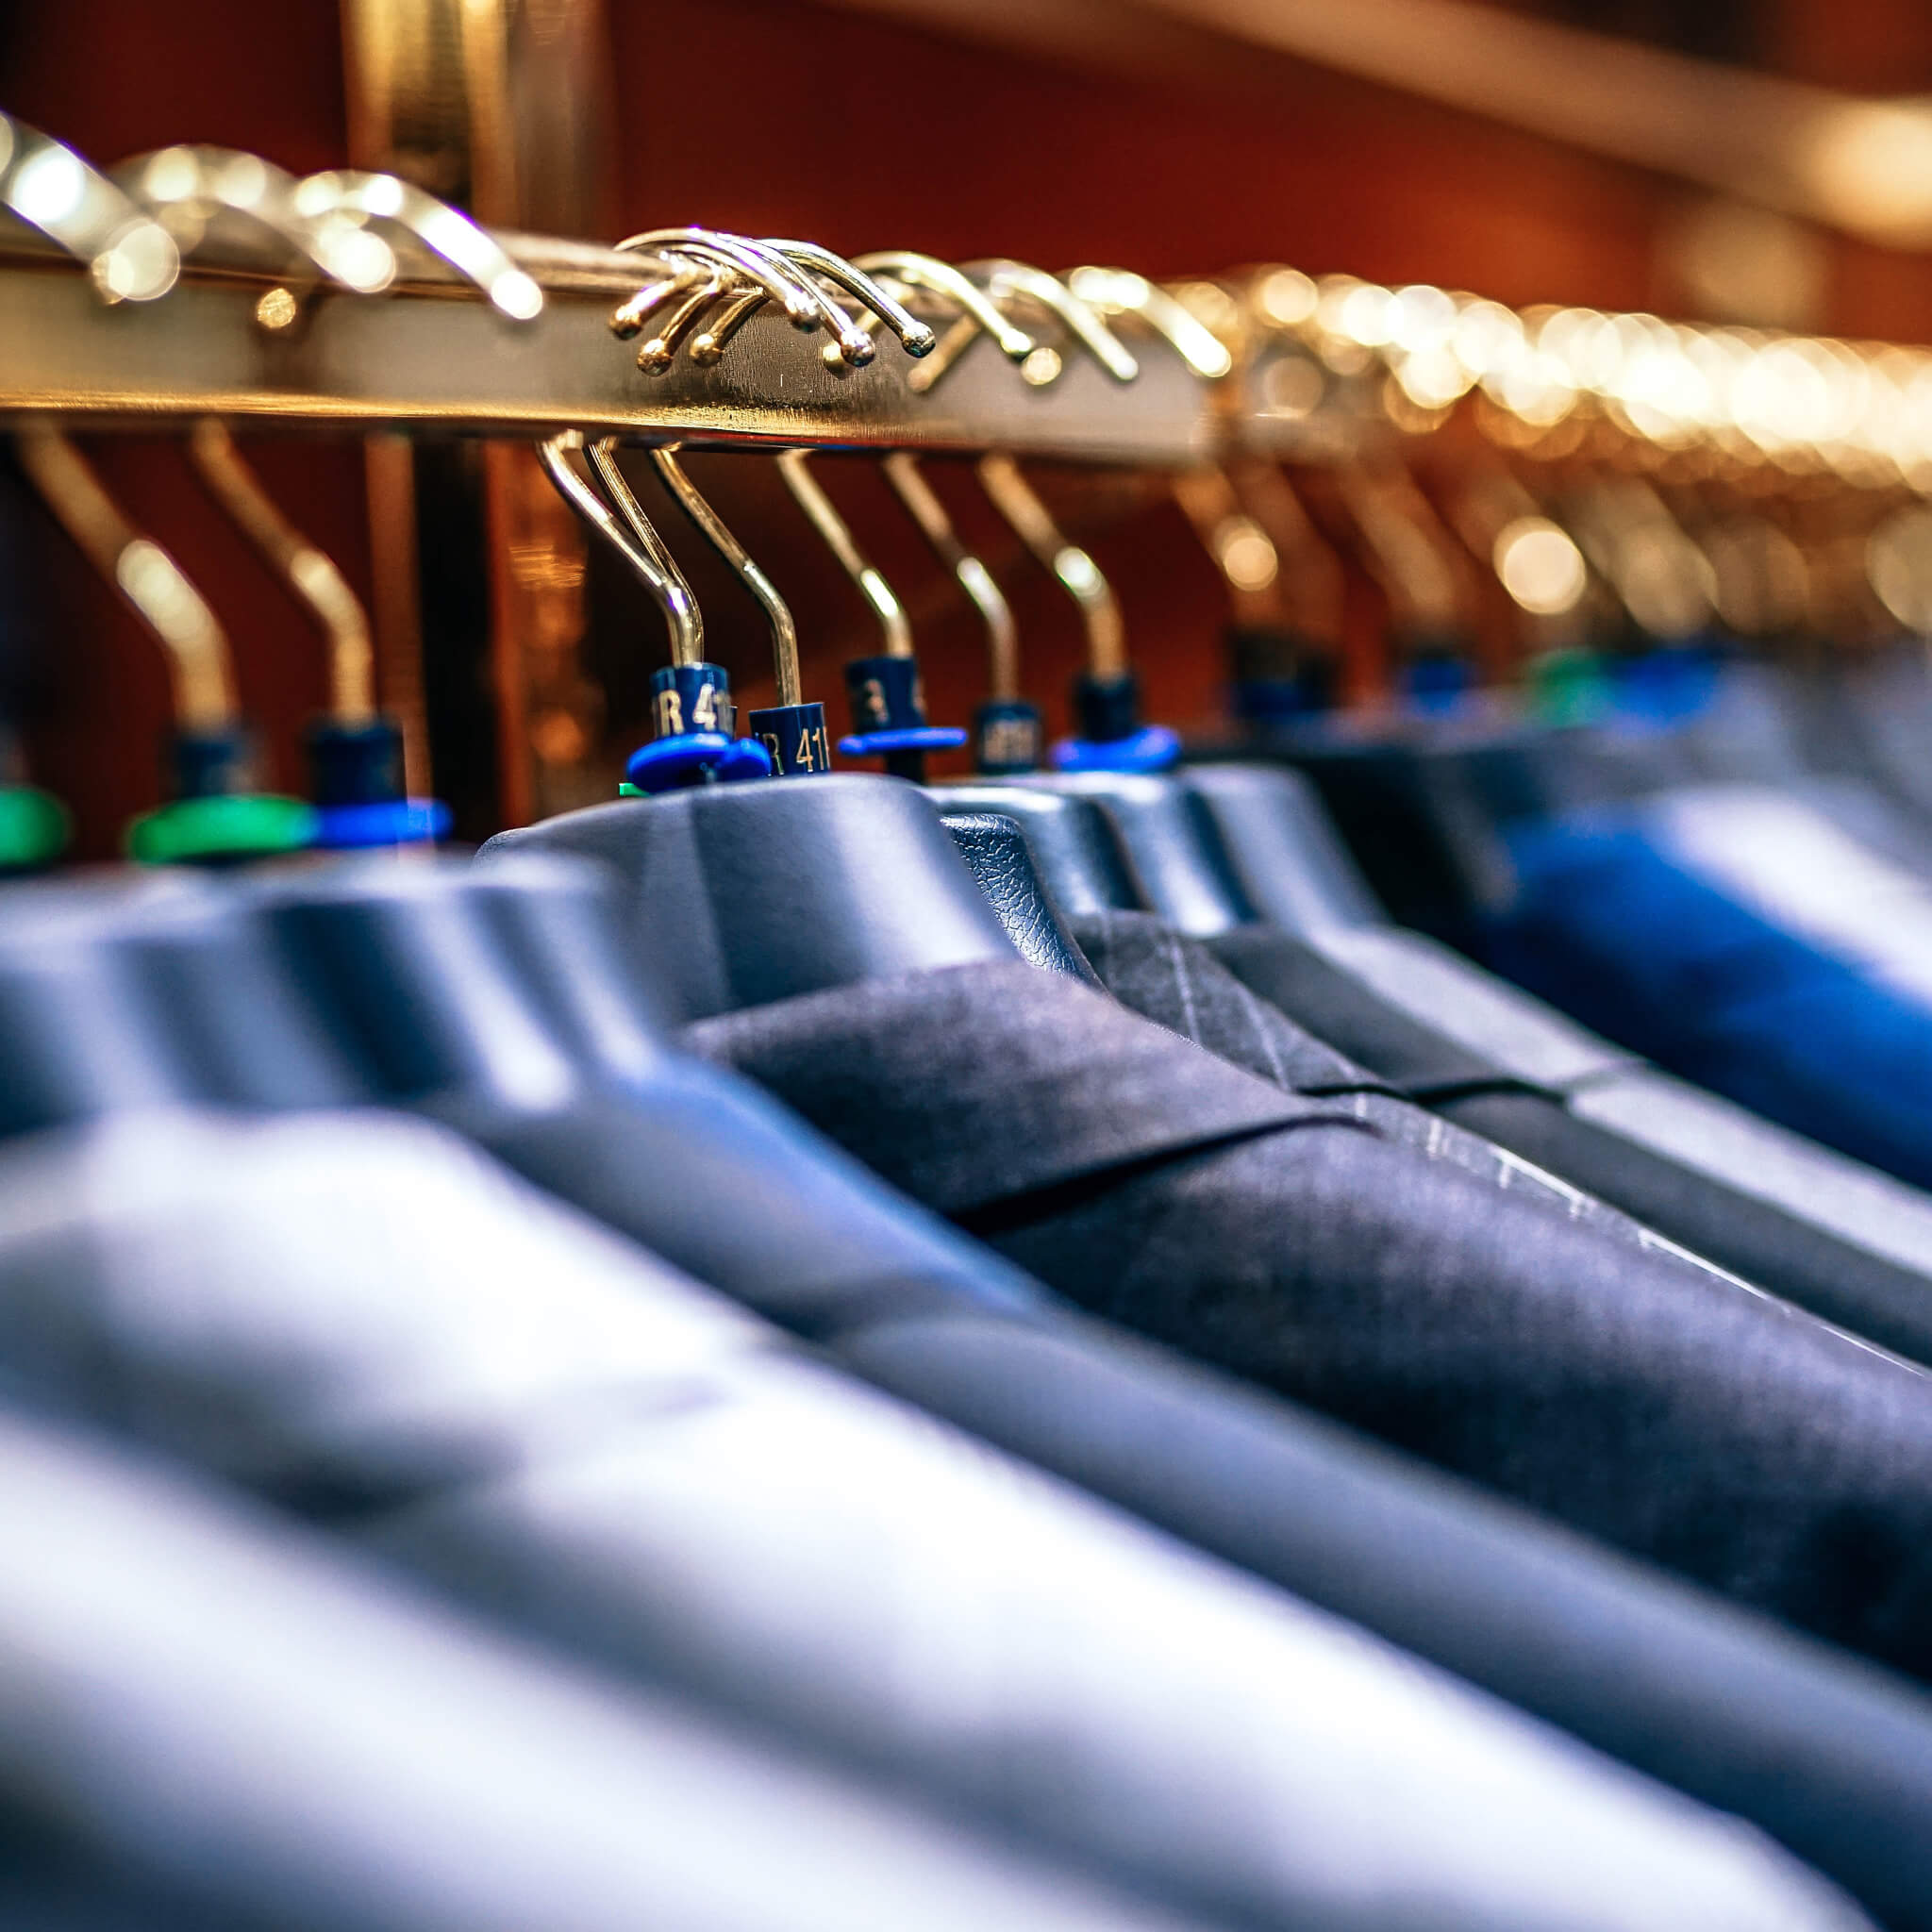 Closets are often disorganized and need help to arrange and assemble.